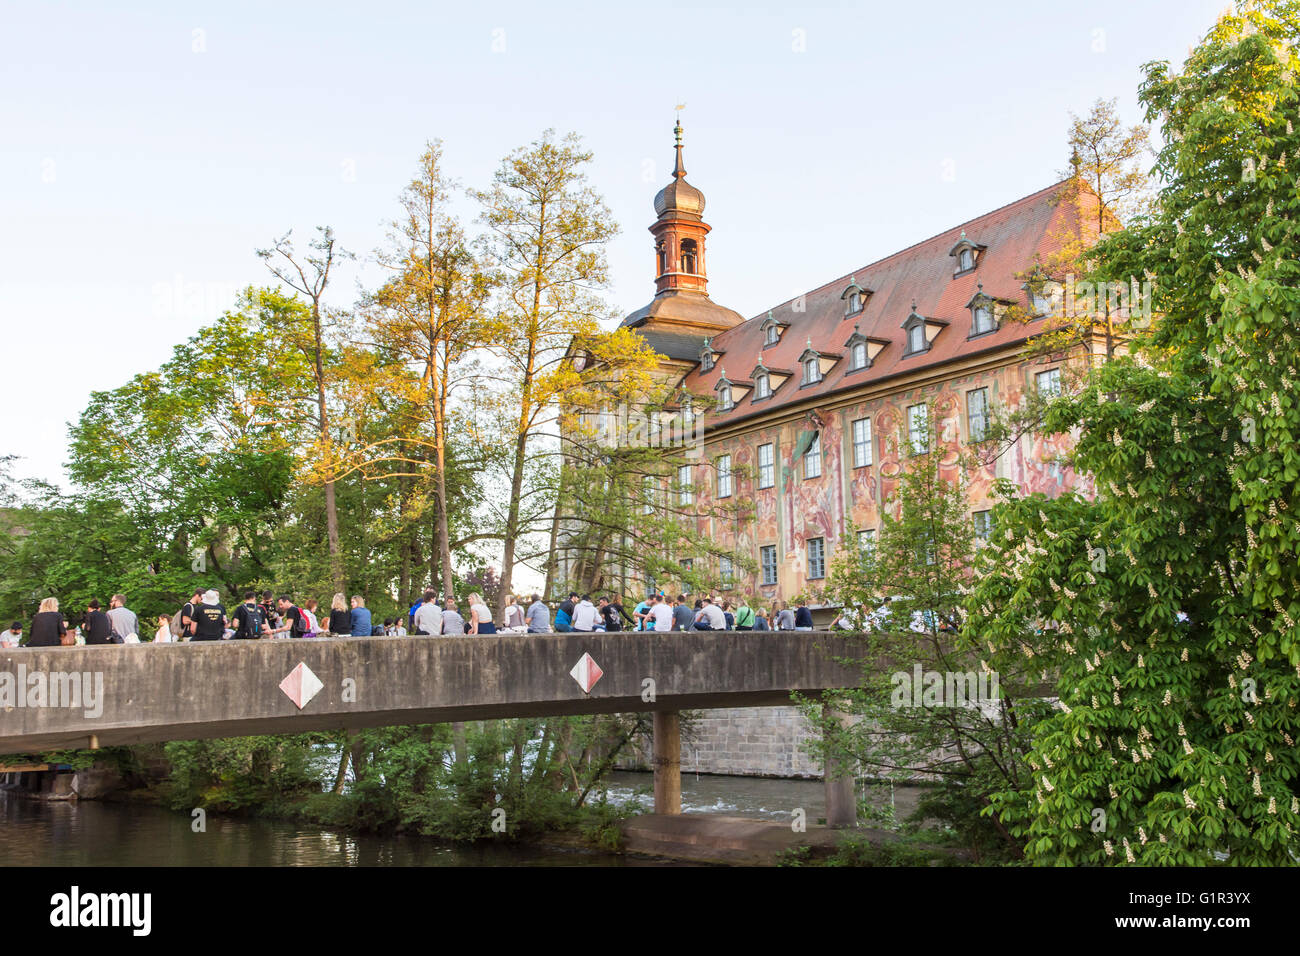 BAMBERG, GERMANY - MAI 7: Tourists at the historic town hall in Bamberg, Germany on Mai 7, 2016. - Stock Image